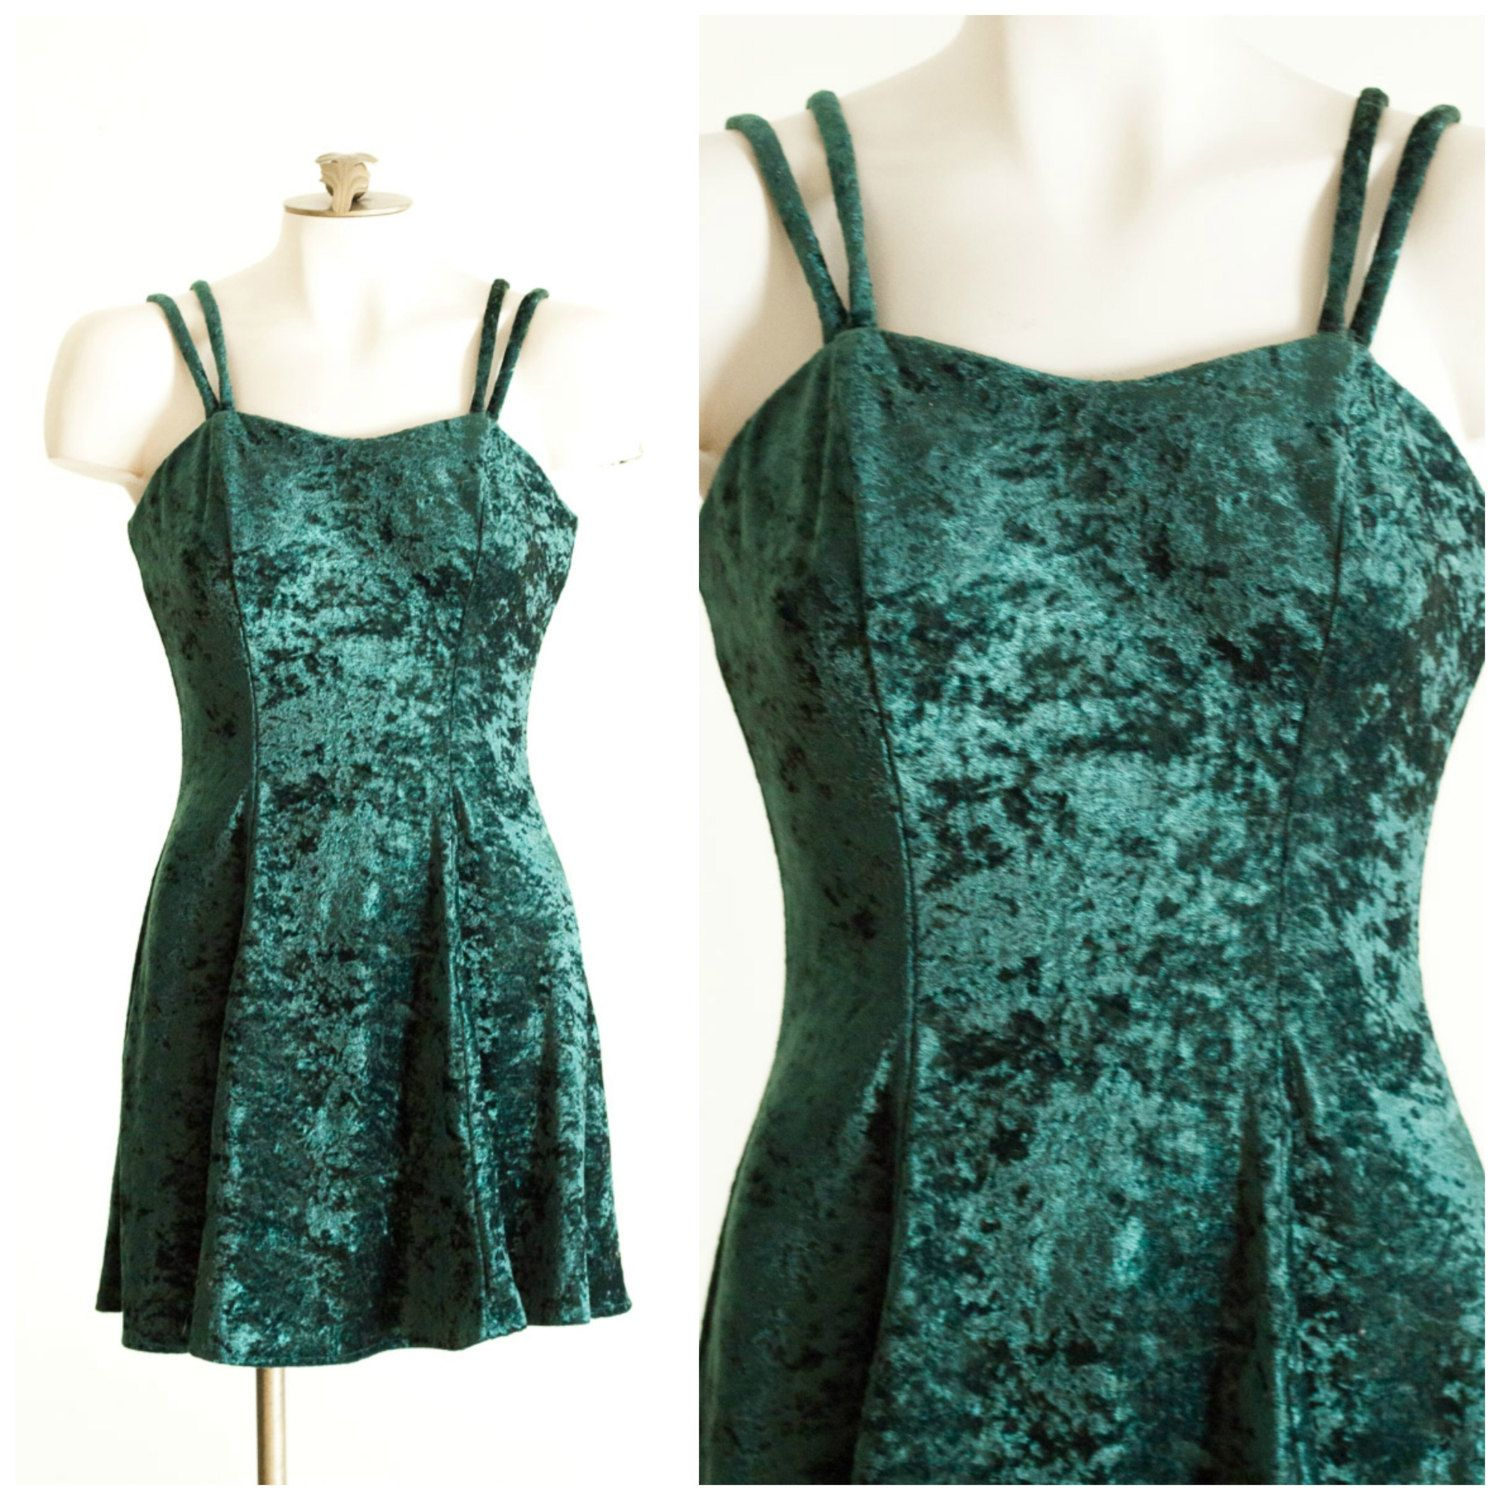 90s emerald green crushed velvet sleeveless dress SIZE S by TimeTravelFashions on Etsy